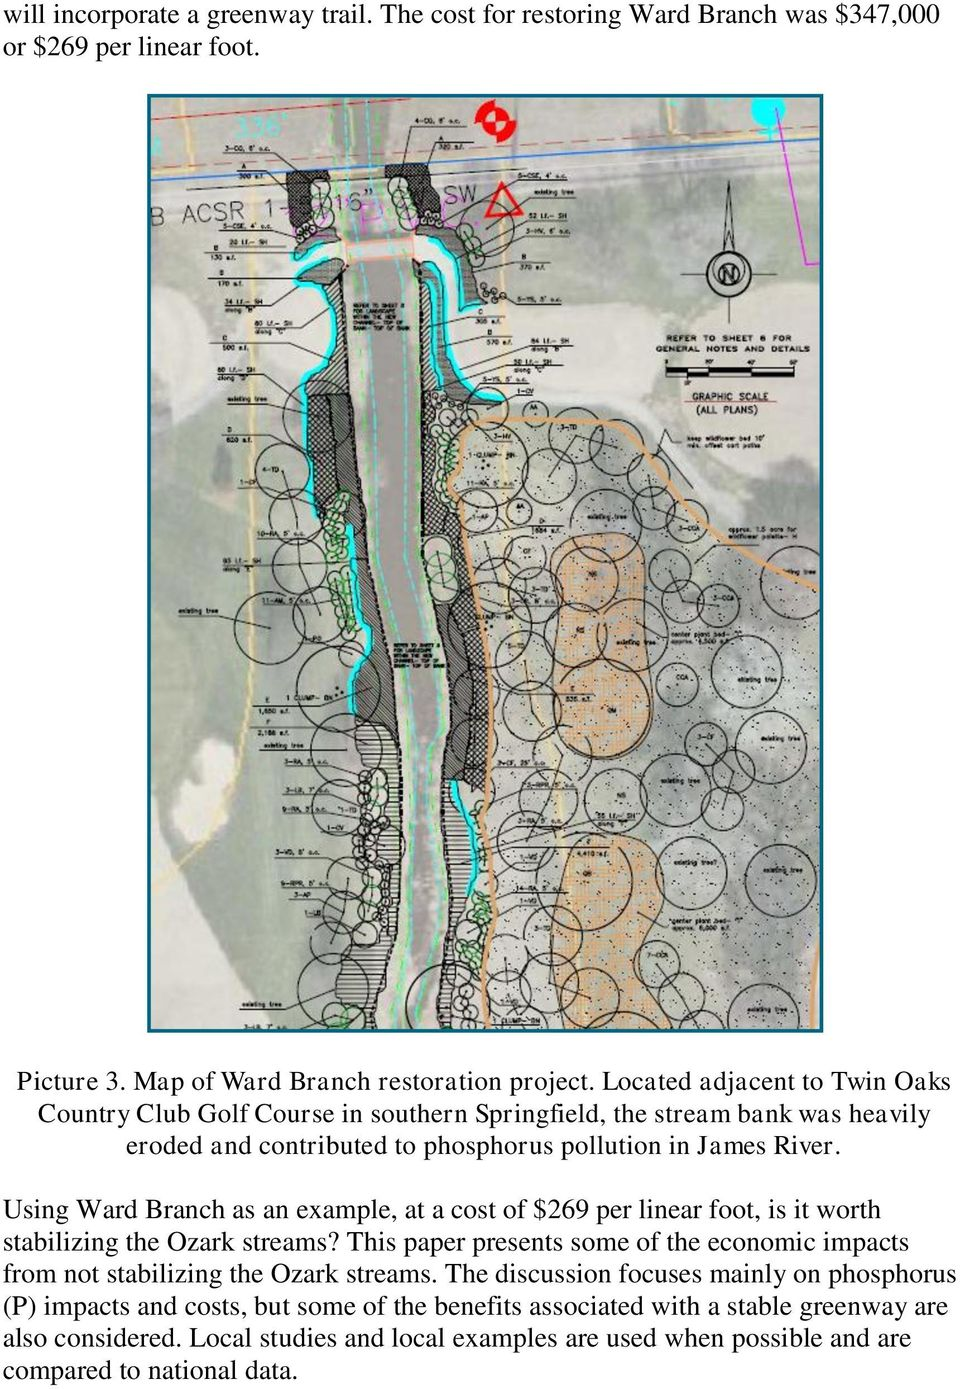 Using Ward Branch as an example, at a cost of $269 per linear foot, is it worth stabilizing the Ozark streams?